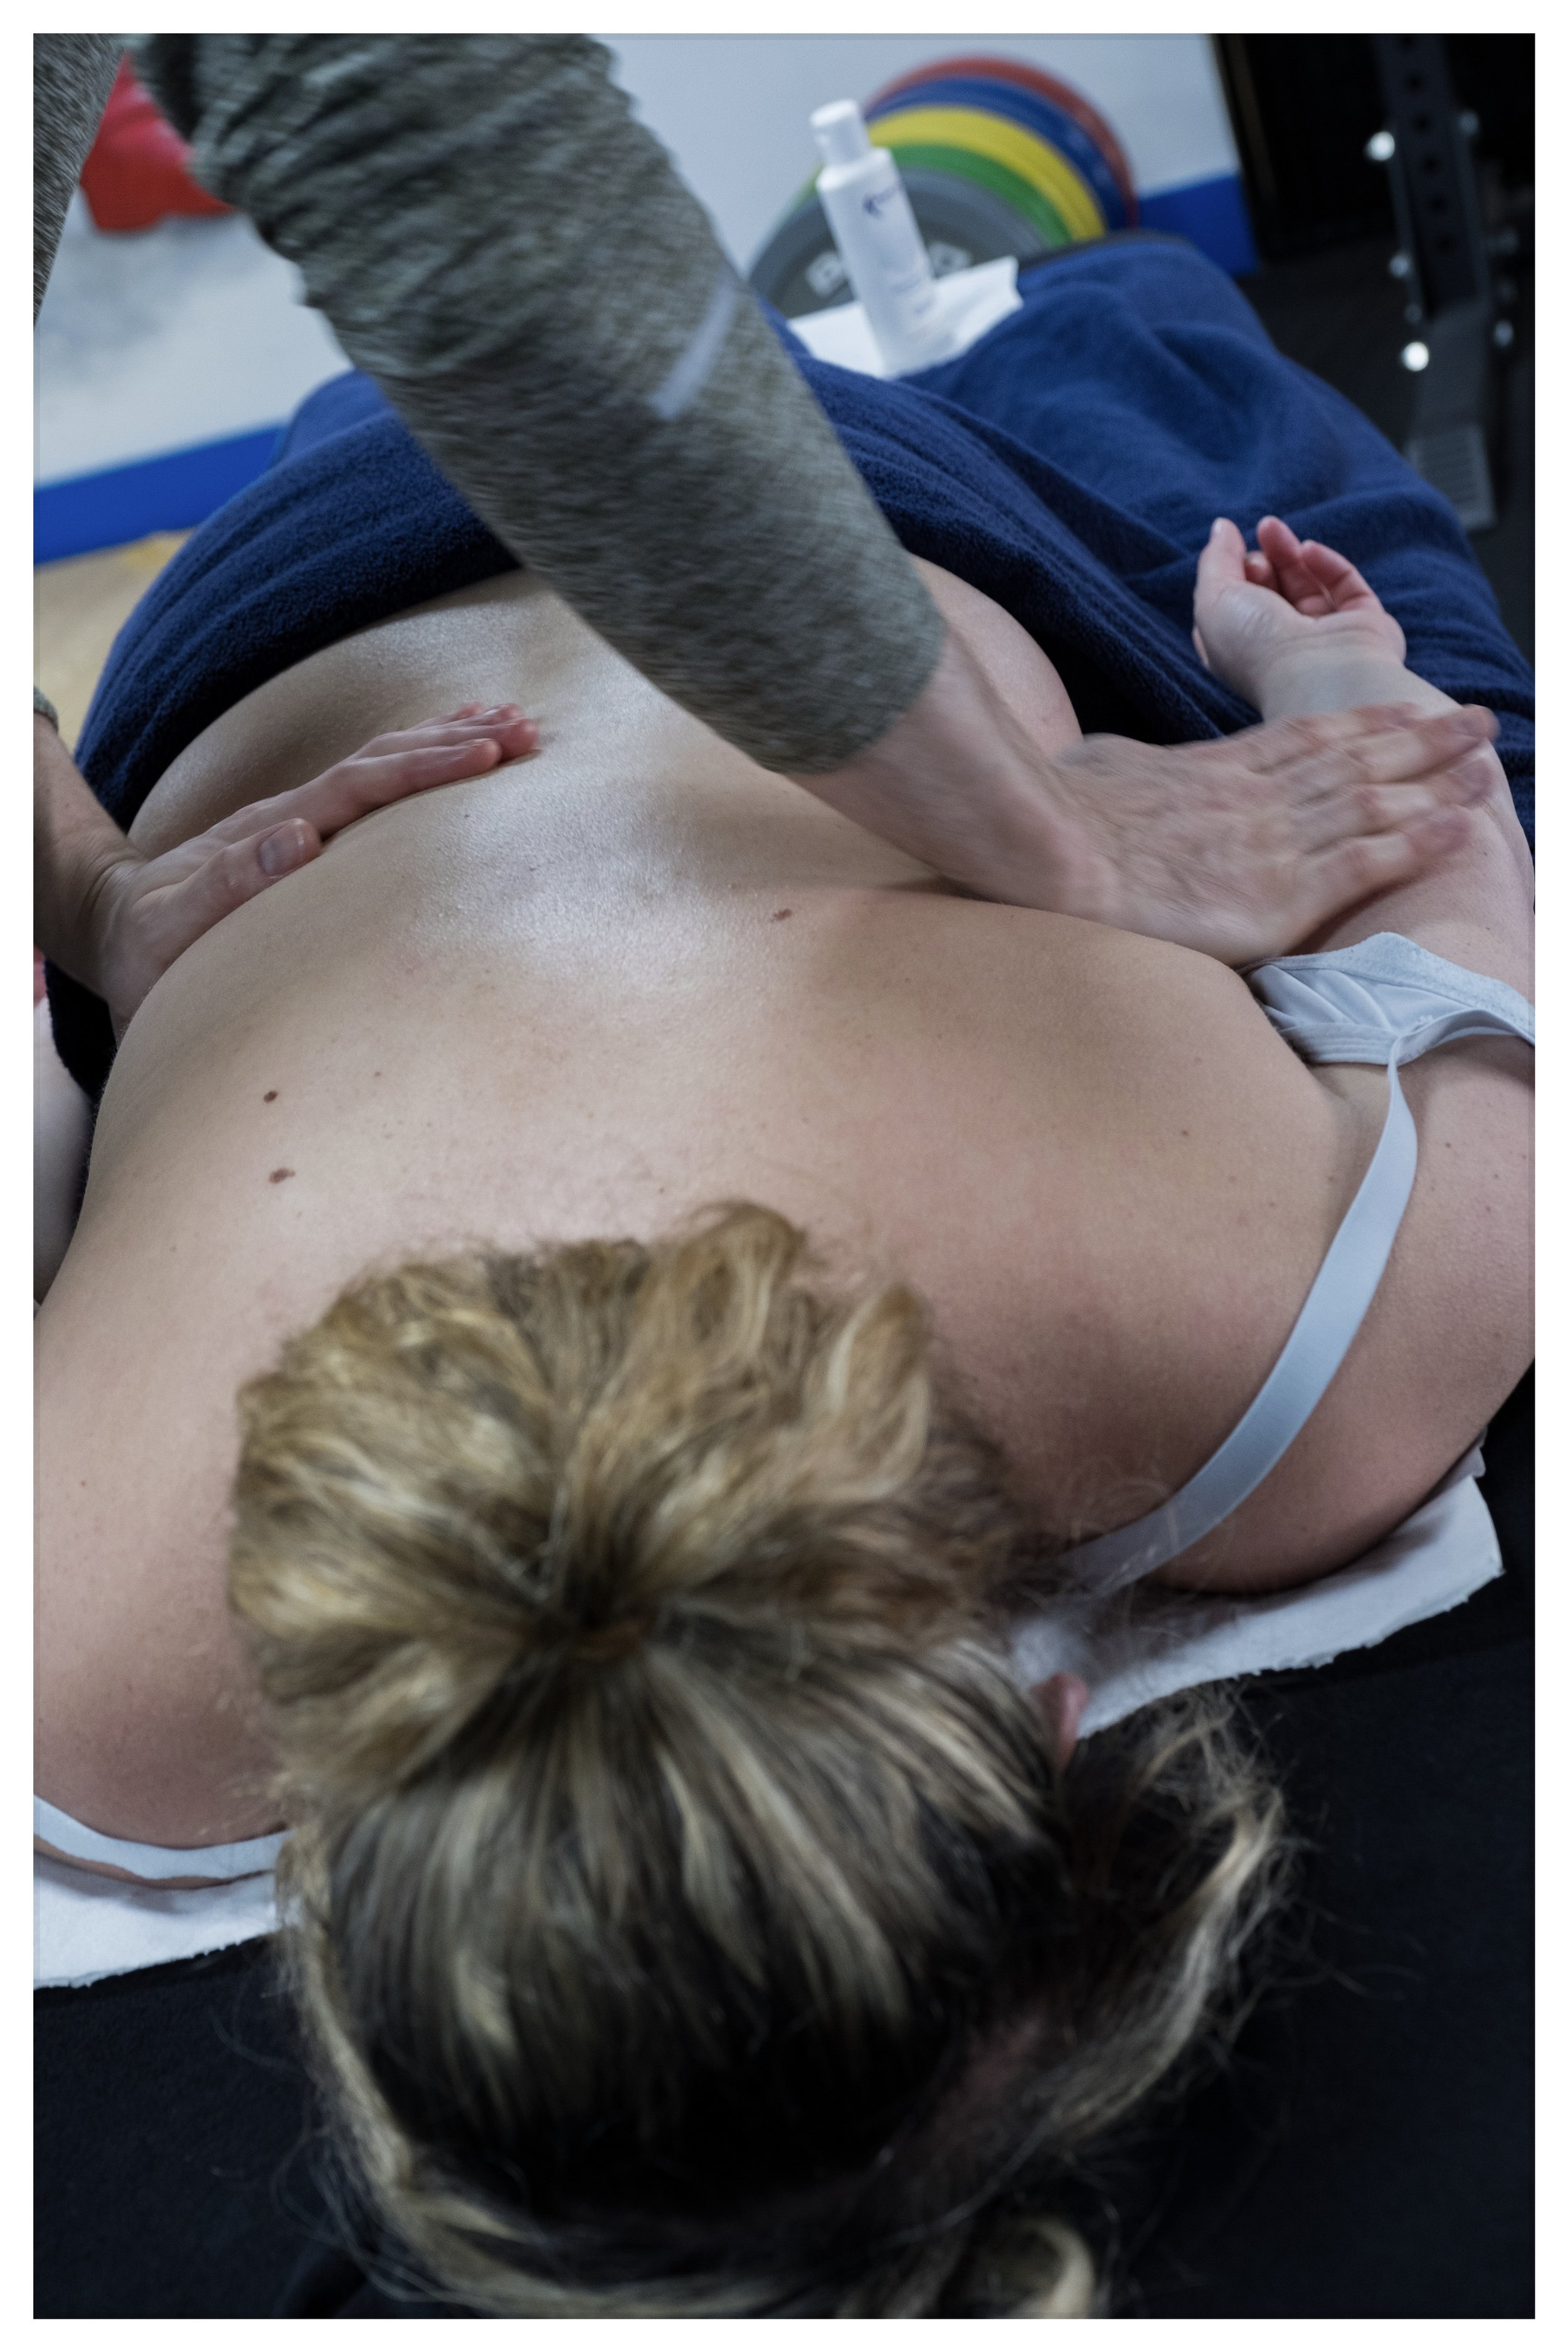 BENEFITS OF SPORTS MASSAGE - Sports massage helps to realign muscle fibres and connective tissues and can increase joint mobility and flexibility. It can relieve pain, reduce the risk of injury and flush away toxins in the body. Soft tissue massage is not only aimed at sports people and can be extremely effective on any muscular aches, pains and strains regardless of if they occurred in the gym, on the pitch or just through the wear and tear of everyday life.Benefits include:Pain reliefReduced muscle tensionStress reliefSpeeding up the healing of tissue damageImproved sleep qualityImproved joint mobilityImproved circulationIncreased flexibilityFor any more information about how sports massage helps these things take place, please get in touch via the contact page or any of my social media pages.